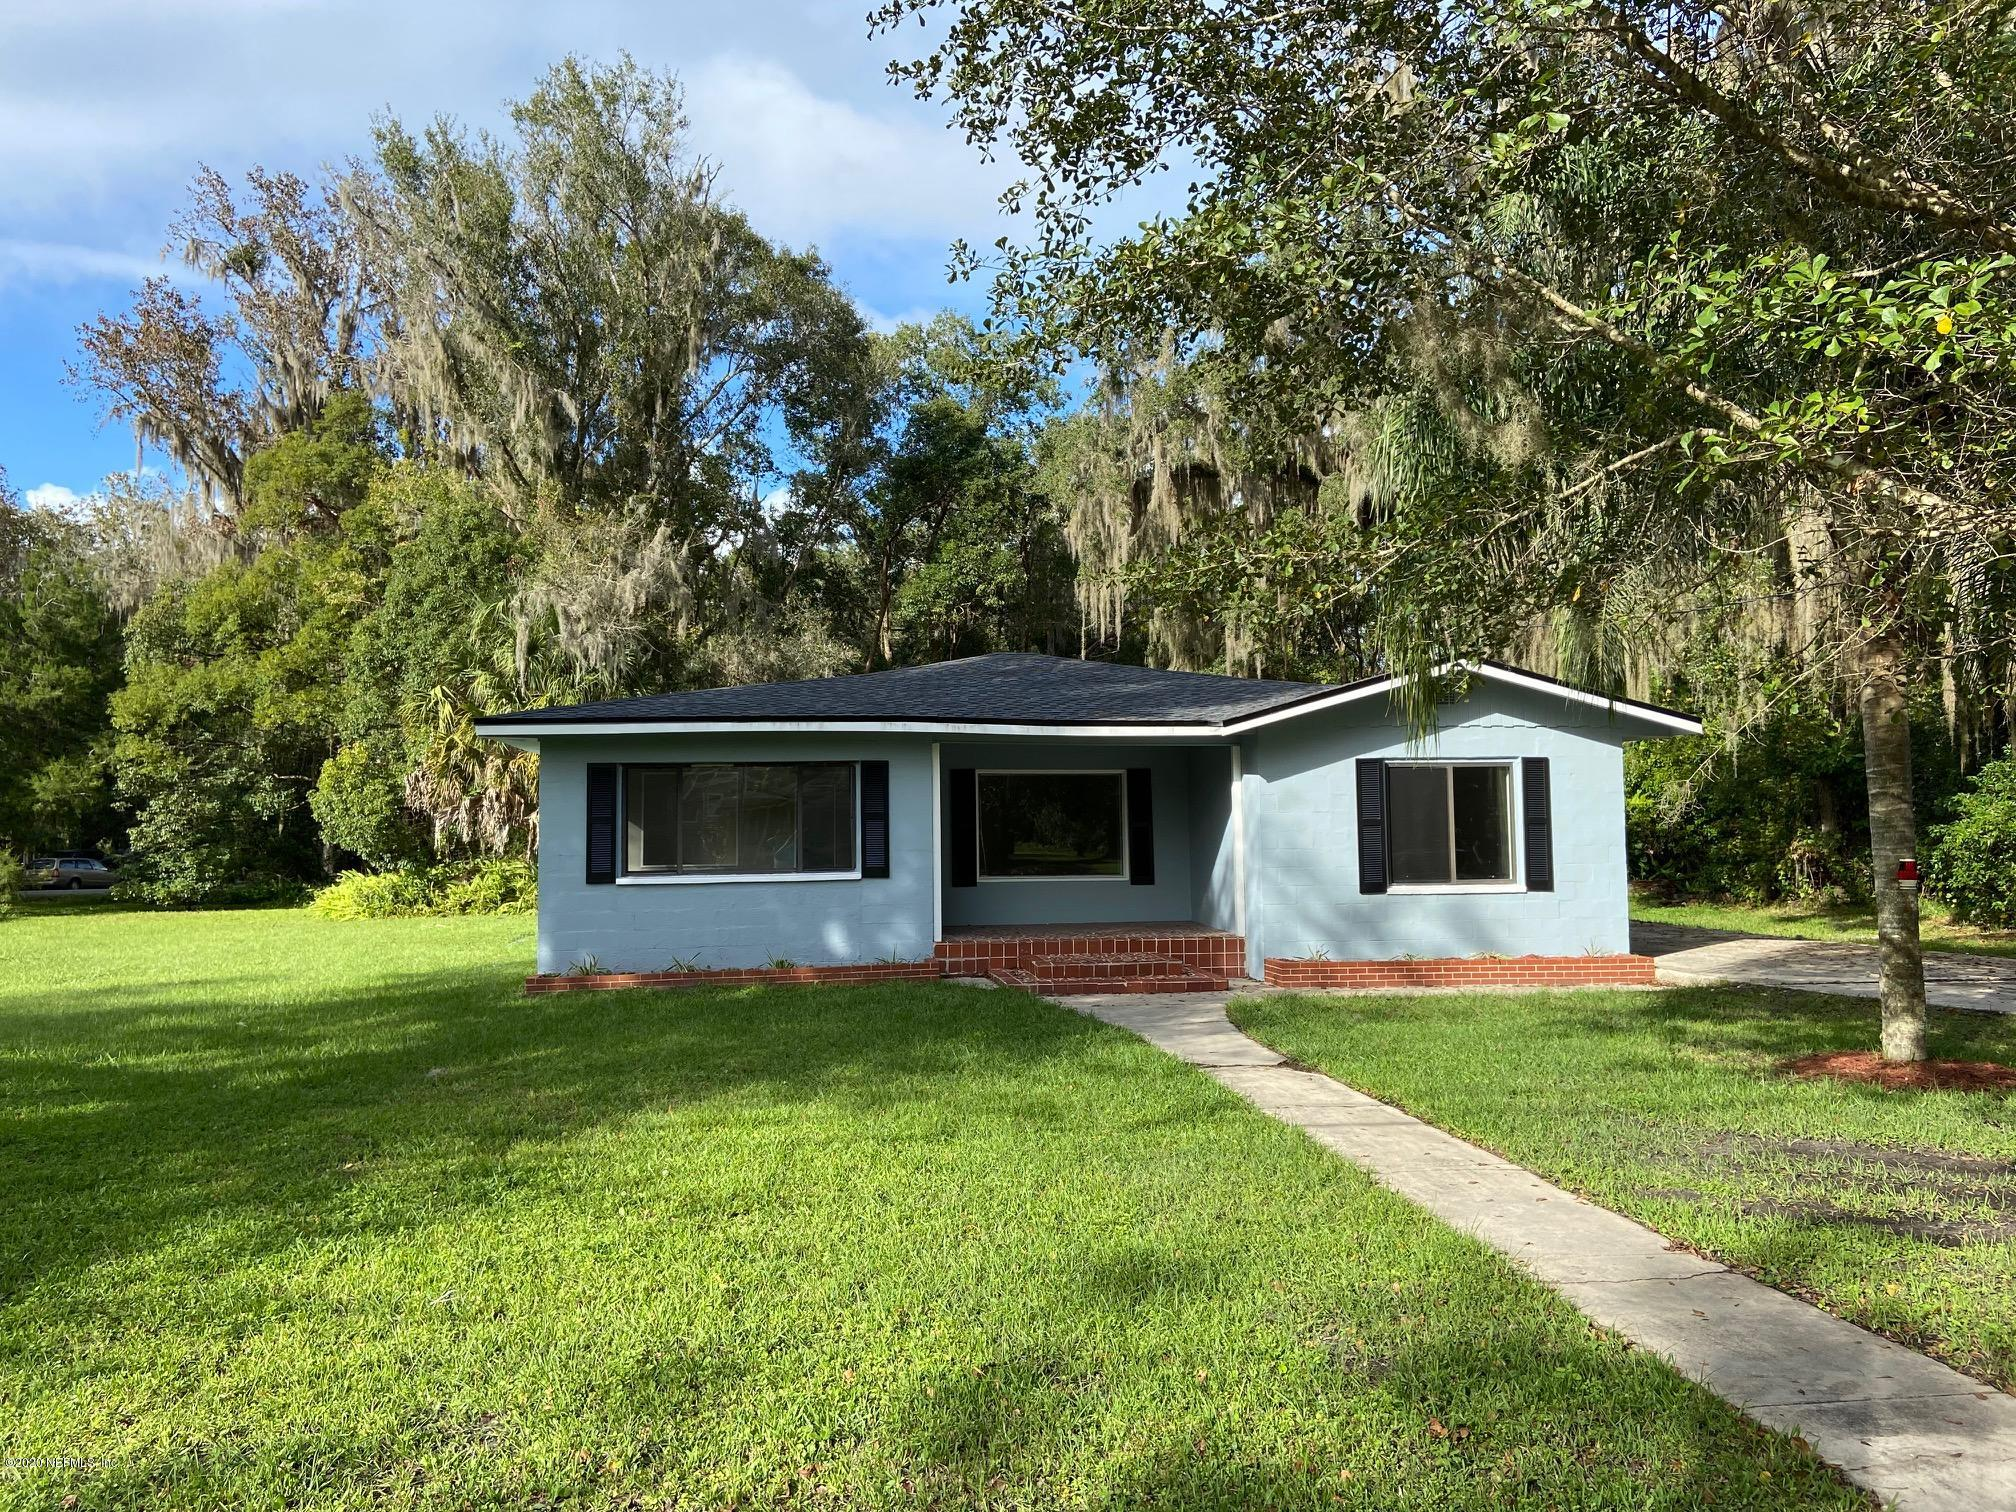 200 CHASE, HASTINGS, FLORIDA 32145, 4 Bedrooms Bedrooms, ,2 BathroomsBathrooms,Residential,For sale,CHASE,1081534